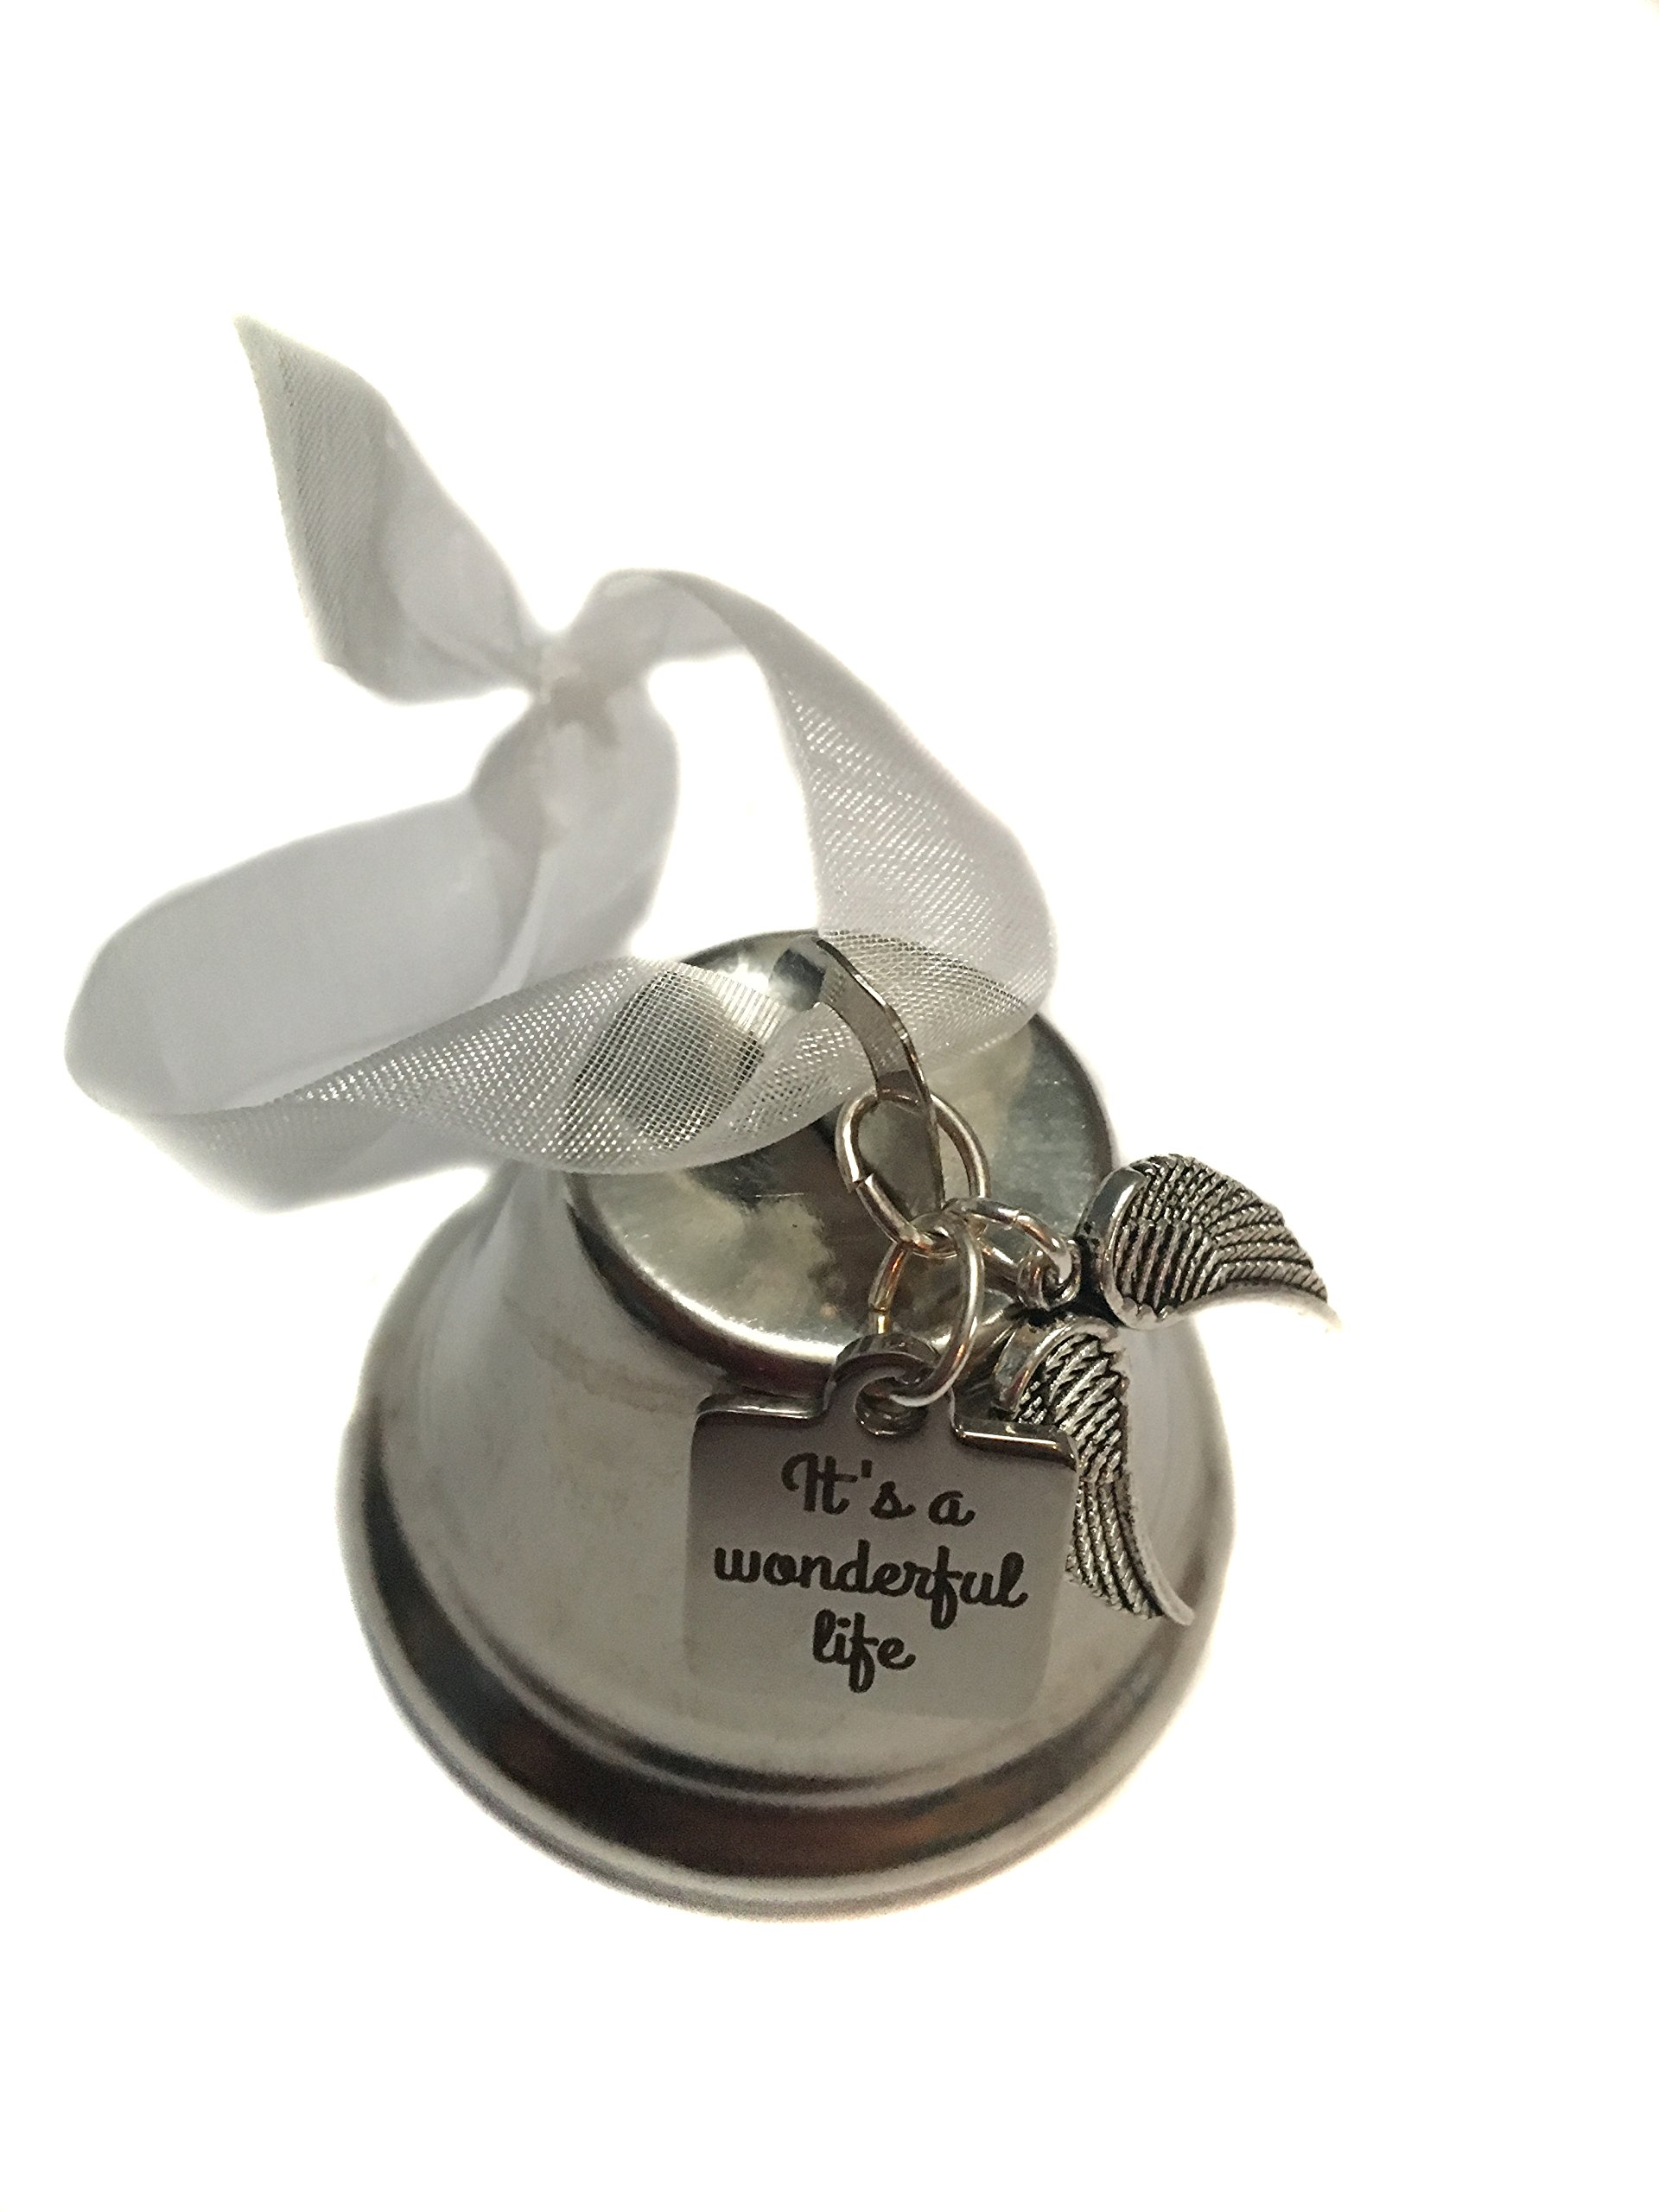 ''It's A Wonderful Life'' Movie Inspired, Double Angel Wing Charm Bell 2'' Ornament, Classic Christmas Gift